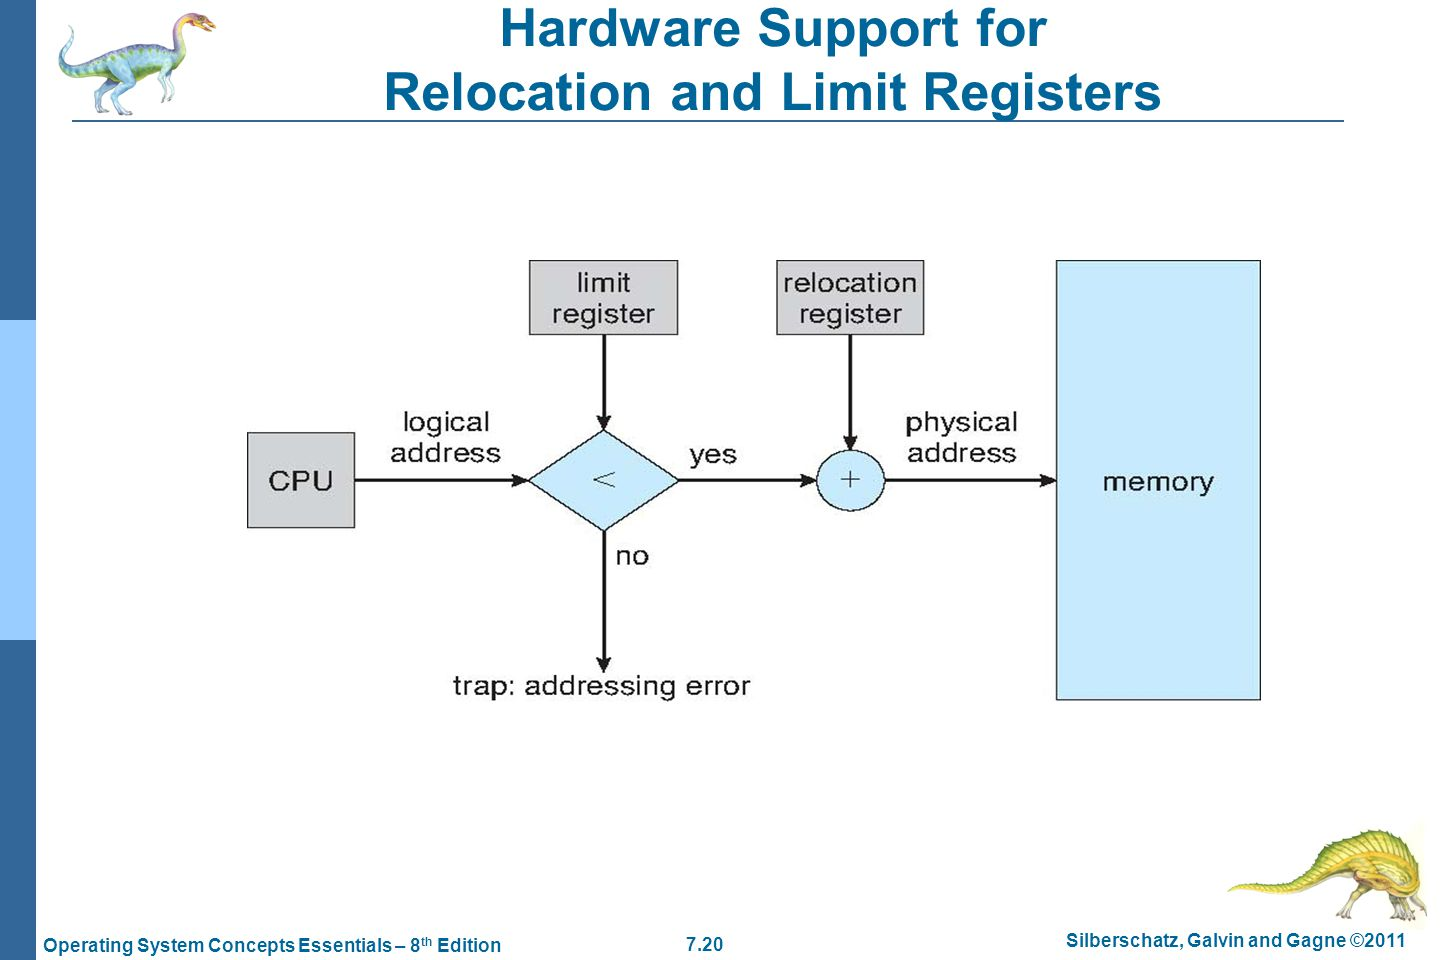 Hardware Support for Relocation and Limit Registers